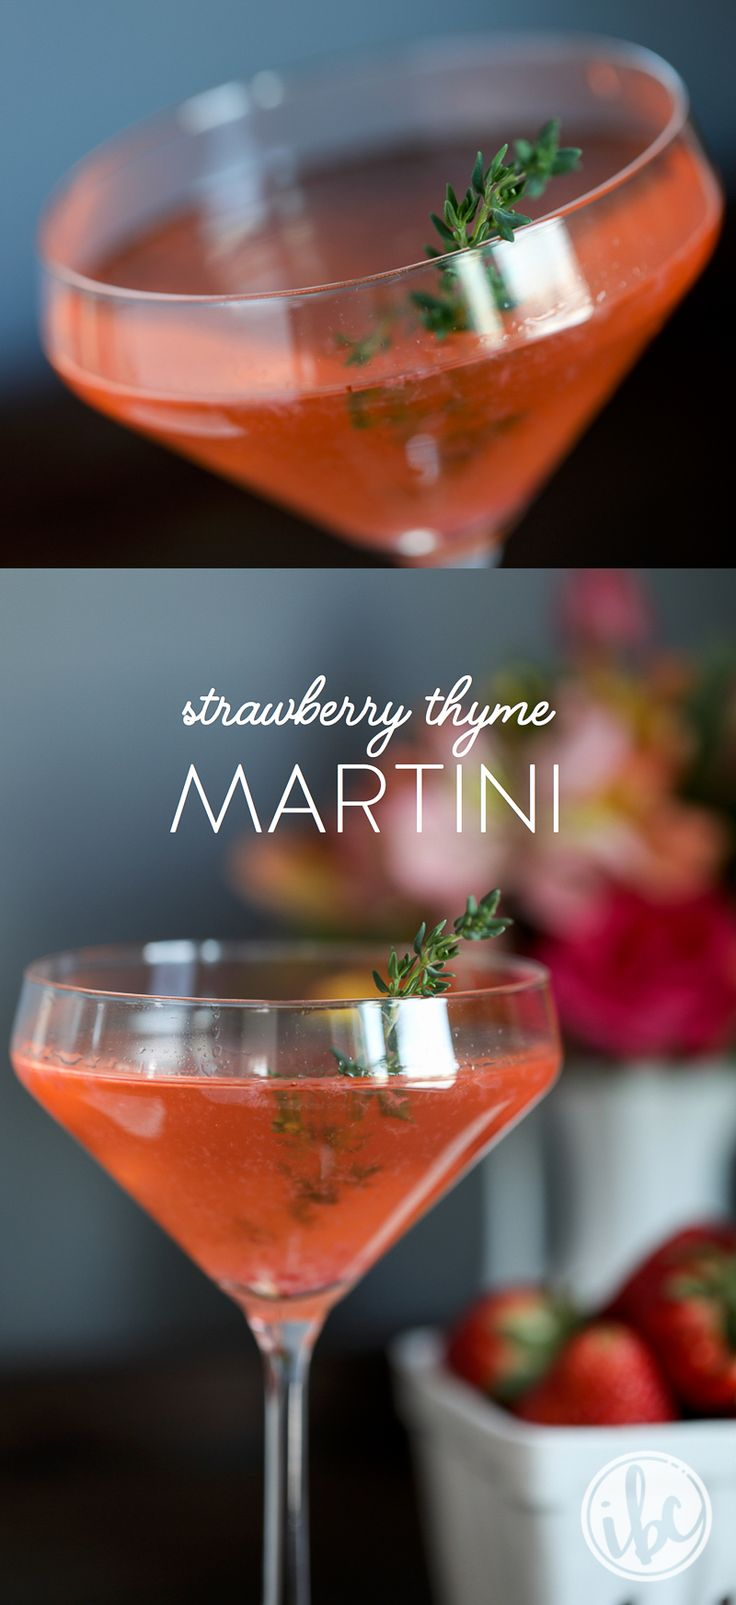 Strawberry Thyme Martini recipe - spring cocktail martini recipe - spring entertaining easter | Inspired by Charm